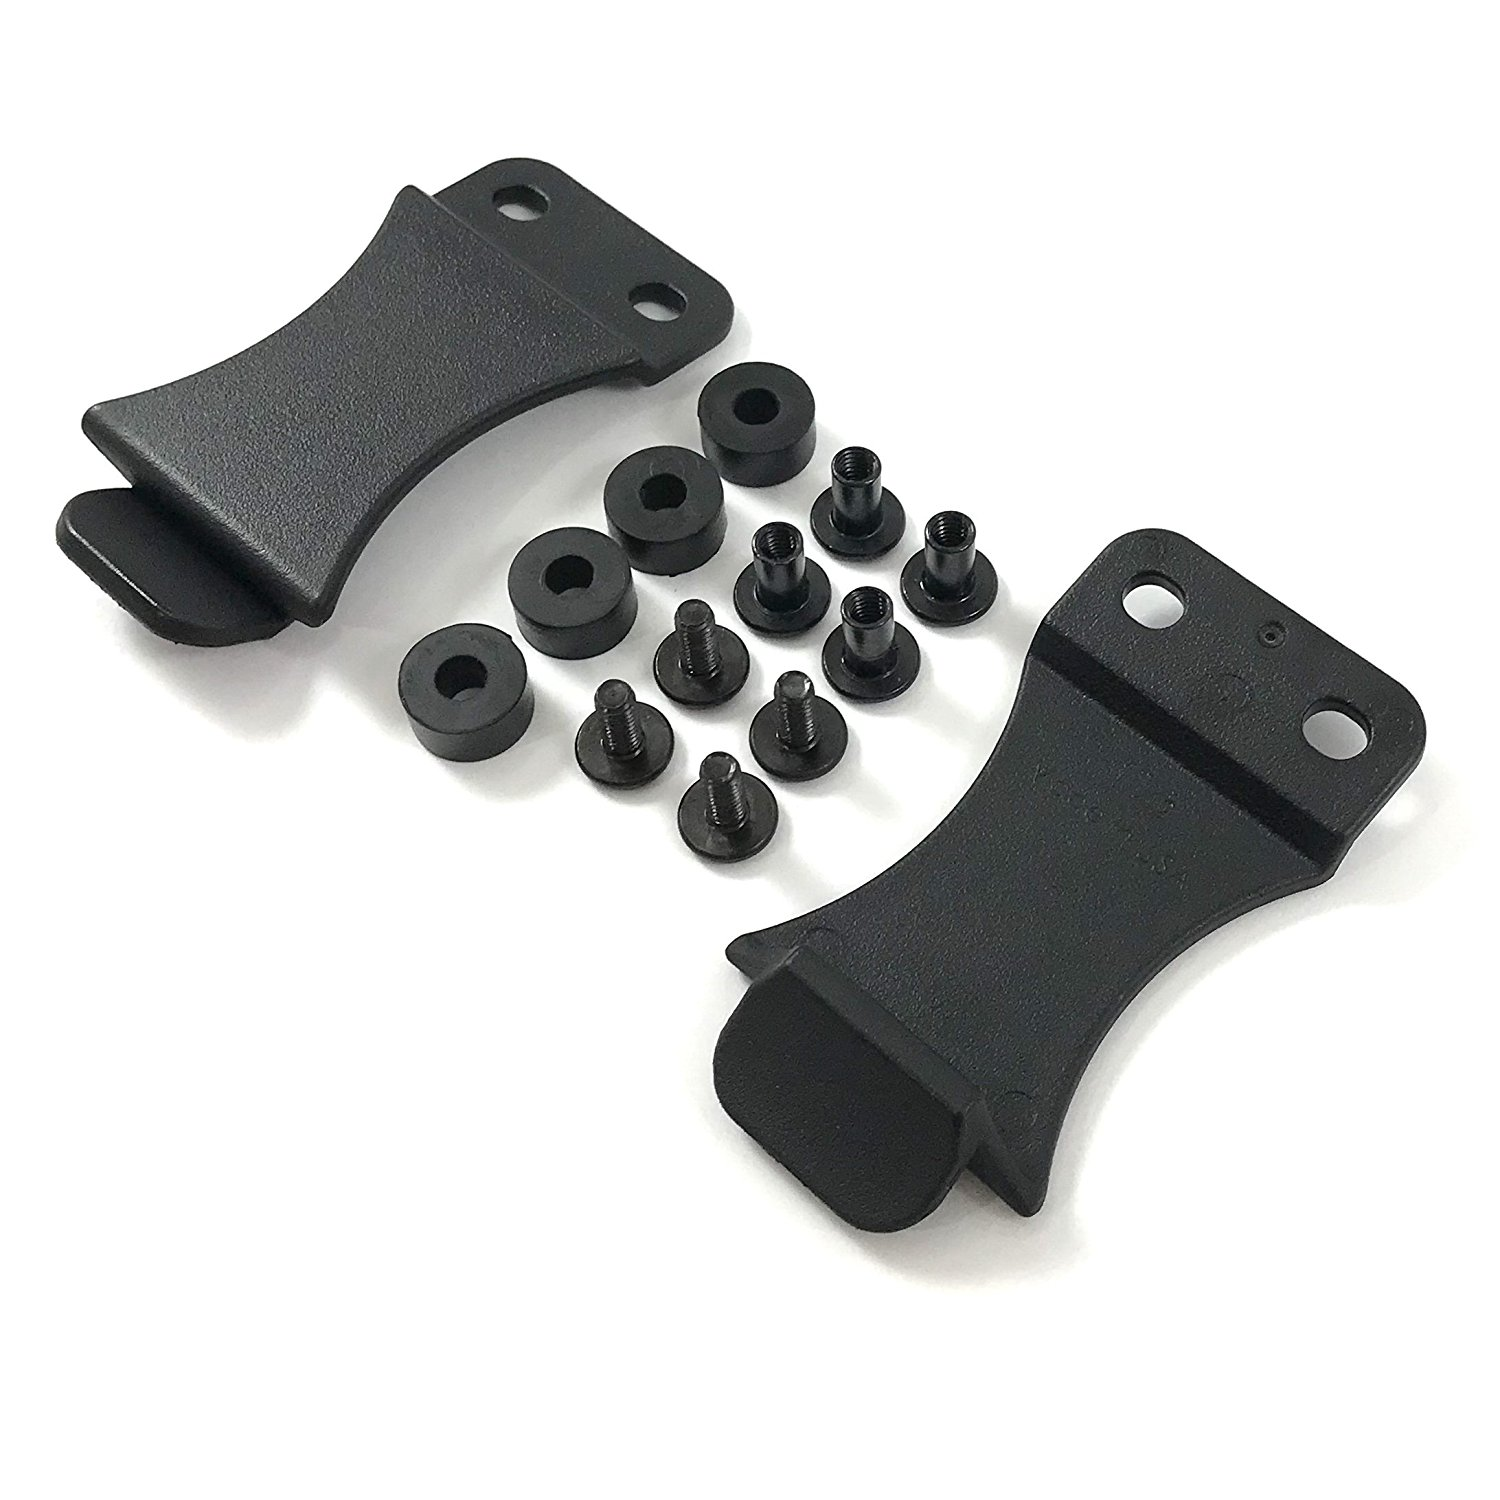 Gun Guy Gear Kydex Holster Quick Clip with Hardware